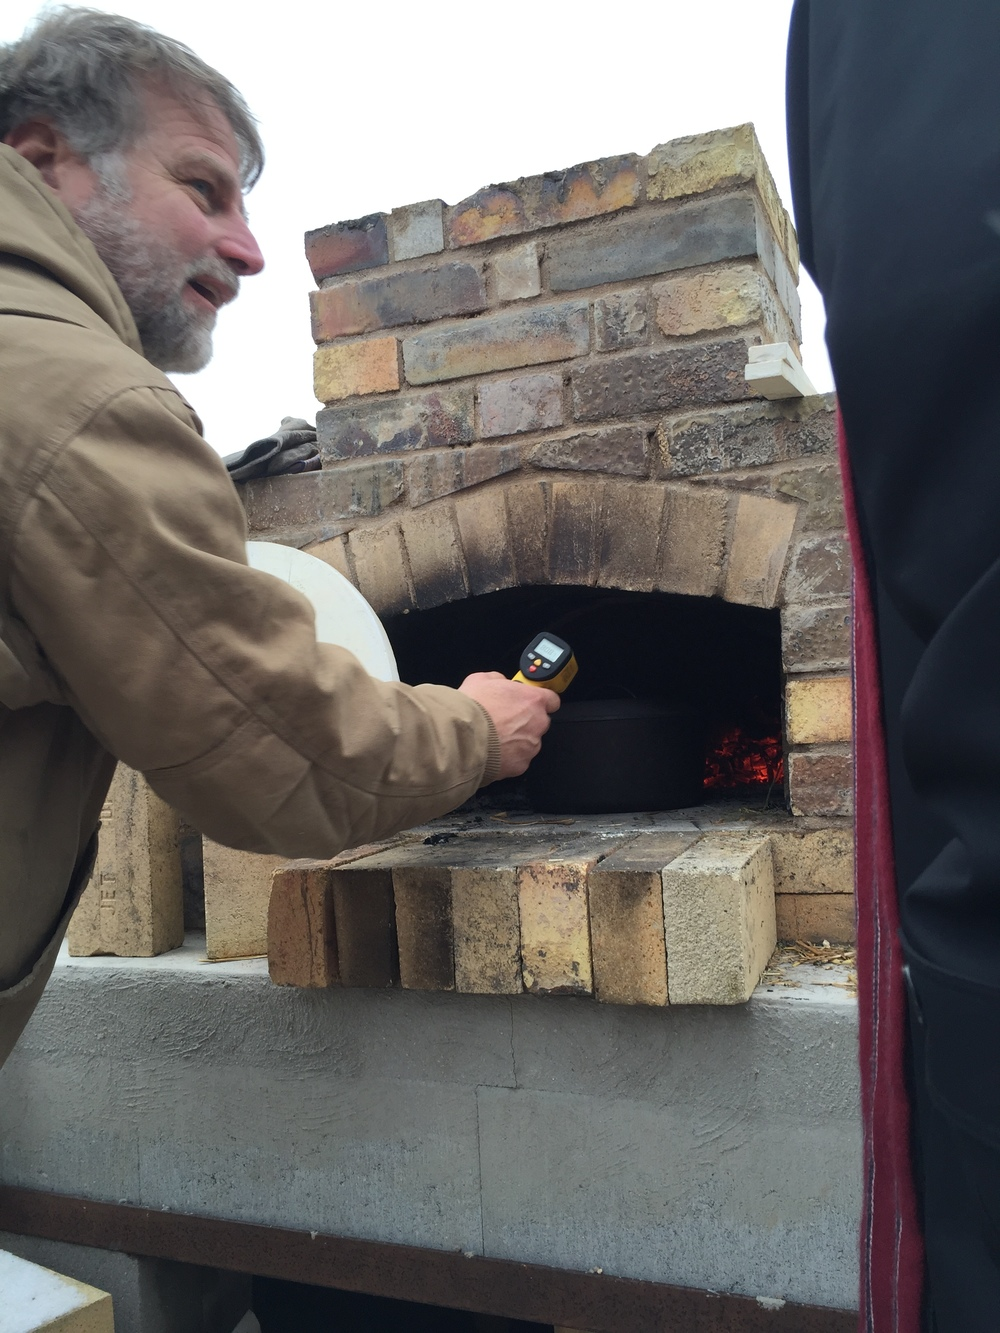 2015-12-25 11.00.05.pizza.stone.oven.outside.bethel.jpg